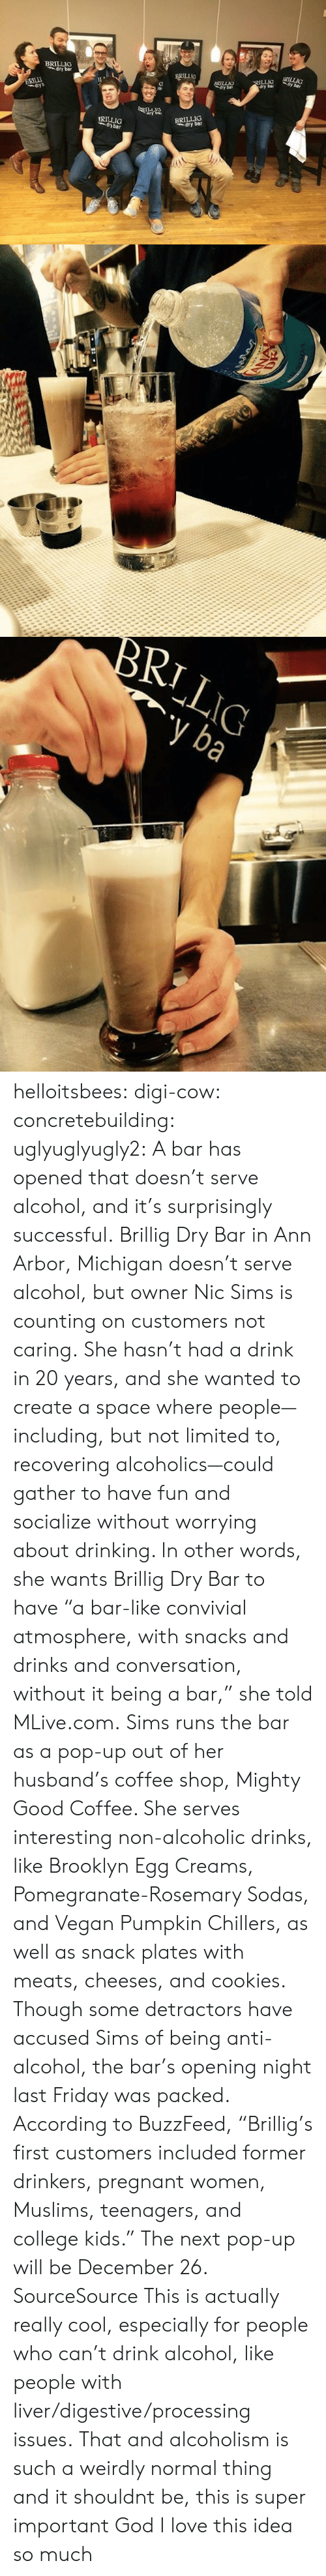 "College, Cookies, and Drinking: BRILLIG  BRIL  ARI LLIO  ar  dry bar  RILLIG  BRILLIG  dry bar   RILIC helloitsbees:  digi-cow:  concretebuilding:   uglyuglyugly2:   A bar has opened that doesn't serve alcohol, and it's surprisingly successful. Brillig Dry Bar in Ann Arbor, Michigan doesn't serve alcohol, but owner Nic Sims is counting on customers not caring. She hasn't had a drink in 20 years, and she wanted to create a space where people—including, but not limited to, recovering alcoholics—could gather to have fun and socialize without worrying about drinking. In other words, she wants Brillig Dry Bar to have ""a bar-like convivial atmosphere, with snacks and drinks and conversation, without it being a bar,"" she told MLive.com. Sims runs the bar as a pop-up out of her husband's coffee shop, Mighty Good Coffee. She serves interesting non-alcoholic drinks, like Brooklyn Egg Creams, Pomegranate-Rosemary Sodas, and Vegan Pumpkin Chillers, as well as snack plates with meats, cheeses, and cookies. Though some detractors have accused Sims of being anti-alcohol, the bar's opening night last Friday was packed. According to BuzzFeed, ""Brillig's first customers included former drinkers, pregnant women, Muslims, teenagers, and college kids."" The next pop-up will be December 26.  SourceSource  This is actually really cool, especially for people who can't drink alcohol, like people with liver/digestive/processing issues.   That and alcoholism is such a weirdly normal thing and it shouldnt be, this is super important   God I love this idea so much"